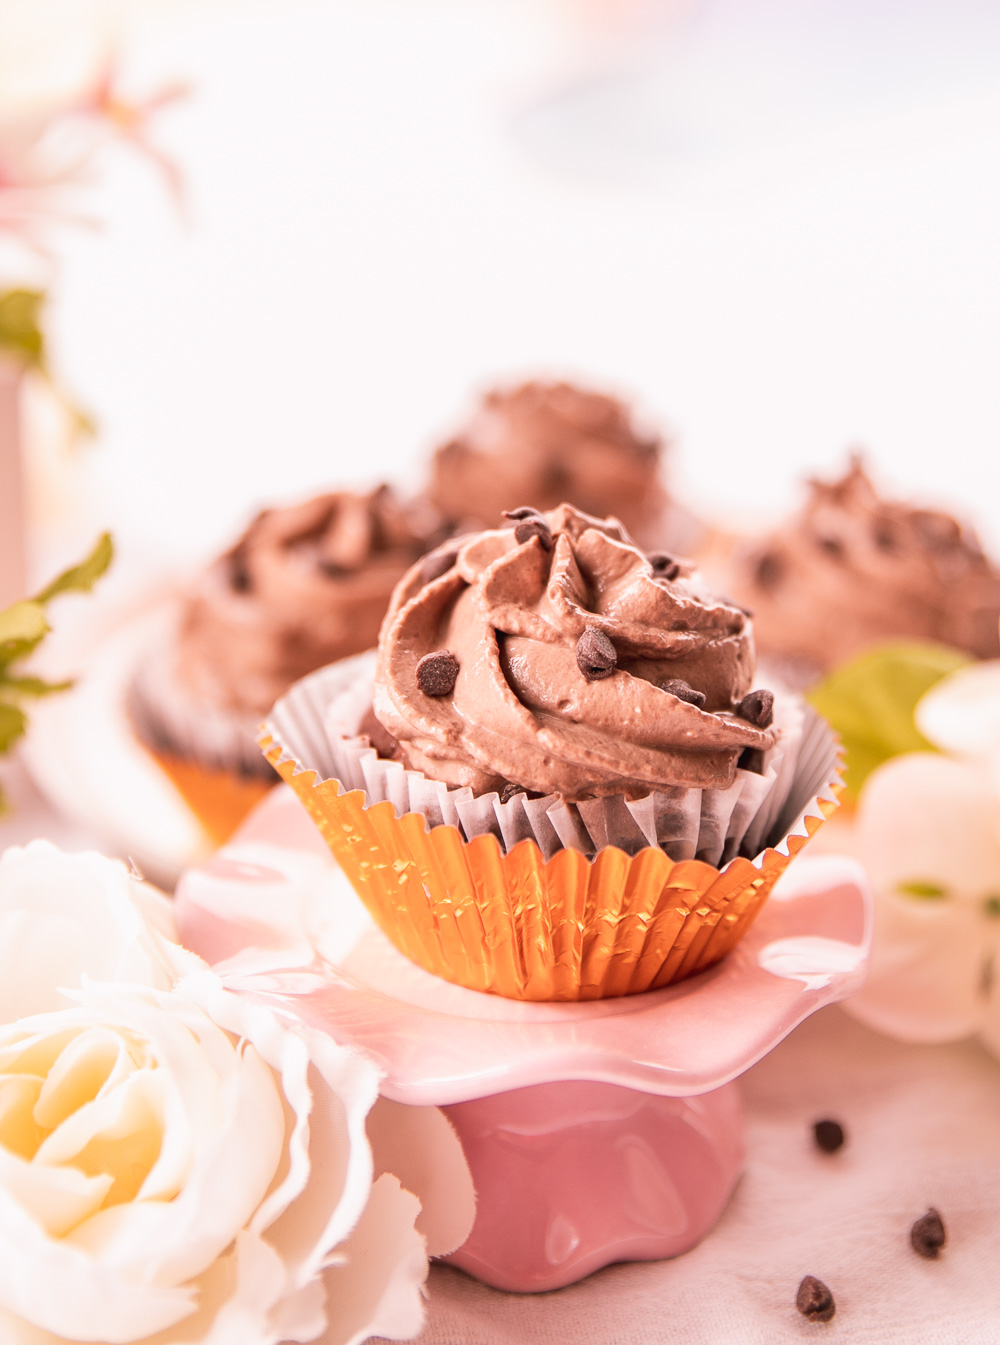 A recipe for the Healthy Chocolate Chip Cupcakes topped with yogurt-based frosting that are low-calorie, all-natural, easy to make, yummy and delicious! #healthydessert #healthysnack #lowcaloriedessert #lowcaloriesnack #lowcalorie #lowcalorierecipe #healthy #healthyrecipe #healthydessertrecipe #lowcaloriemeal #wholegrain #easyrecipe #healthycake #lowcaloriecake #lowcaloriefrosting #healthycupcake #lowcaloriecupcake #healthycupcakes #lowcaloriecupcakes #lowcaloriefrosting